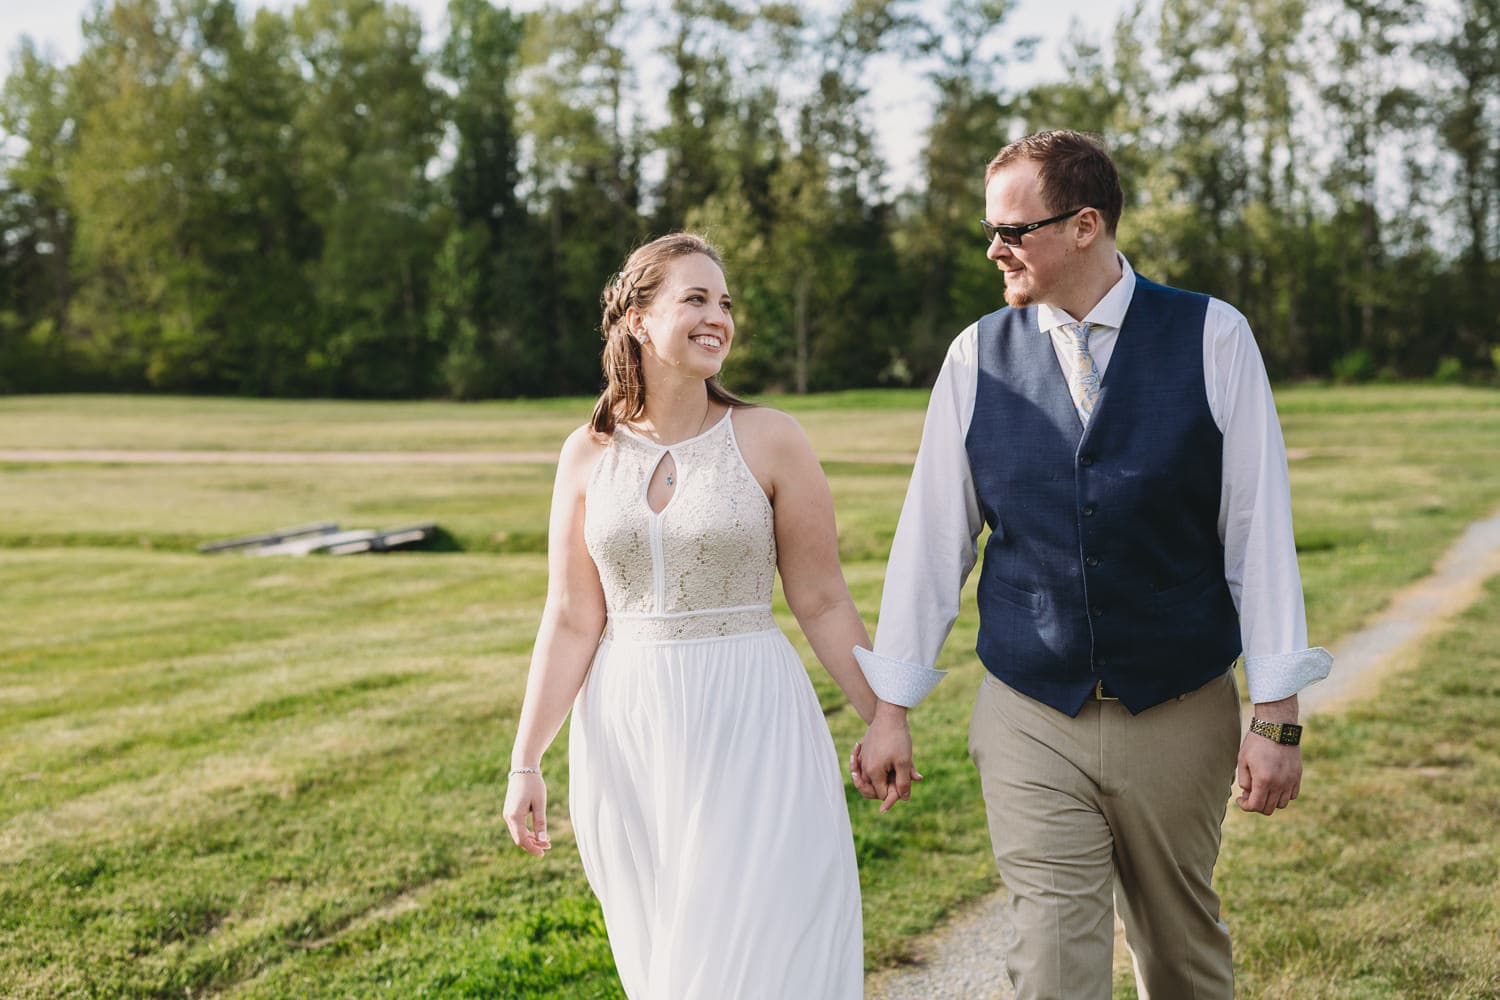 campbell valley park couples portraits after elopement ceremony